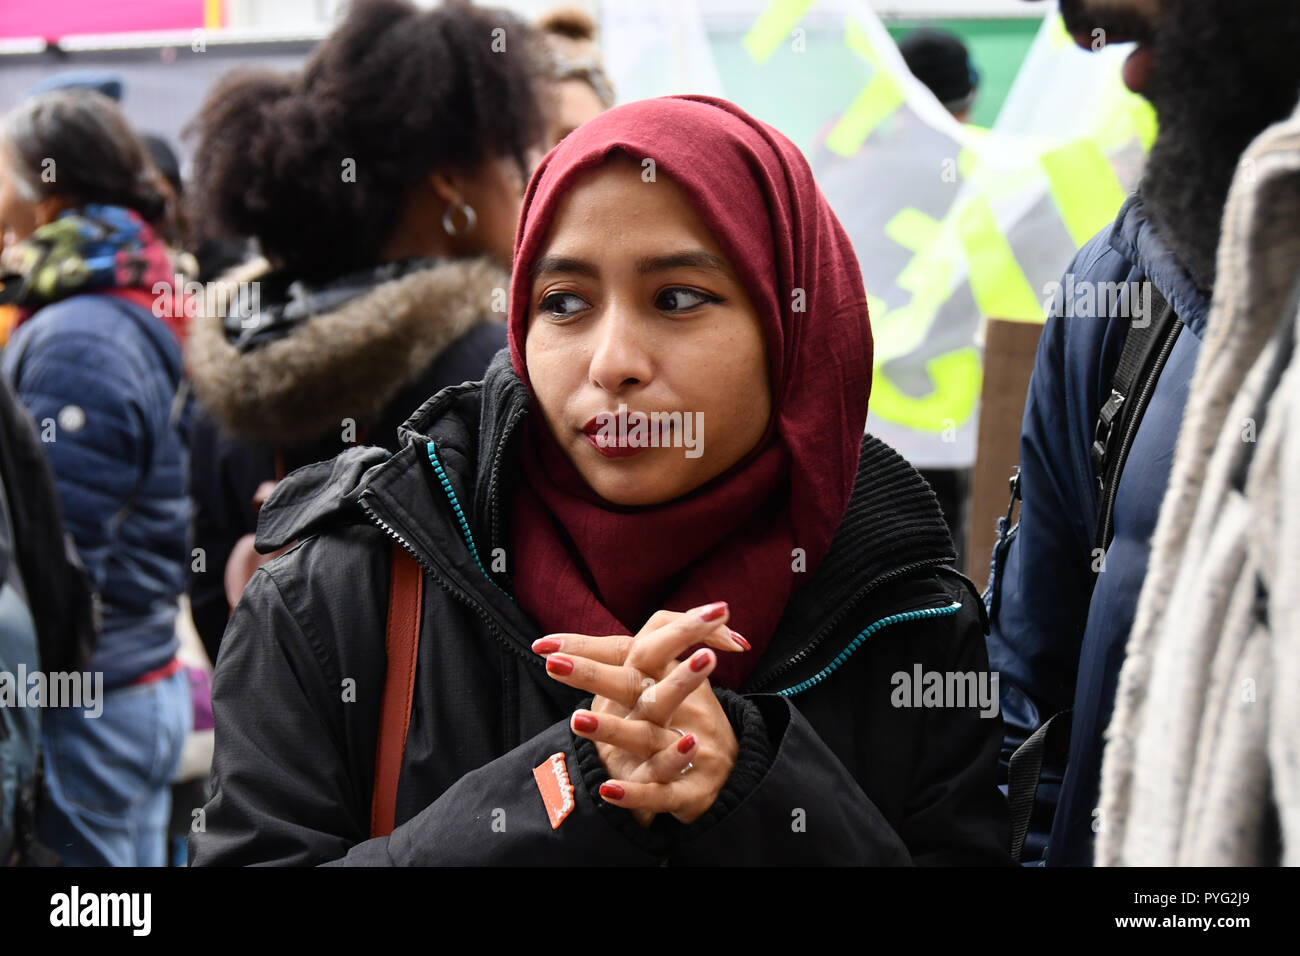 London, UK. 27th October 2018. Victims of white , black and Asian the United Families and Friends Campaign (UFFC) 20th Anniversary Procession march to Downing Street demand ask demand justice for their love one killed by polices on 27 October 2018, London, UK. Credit: Picture Capital/Alamy Live News - Stock Image